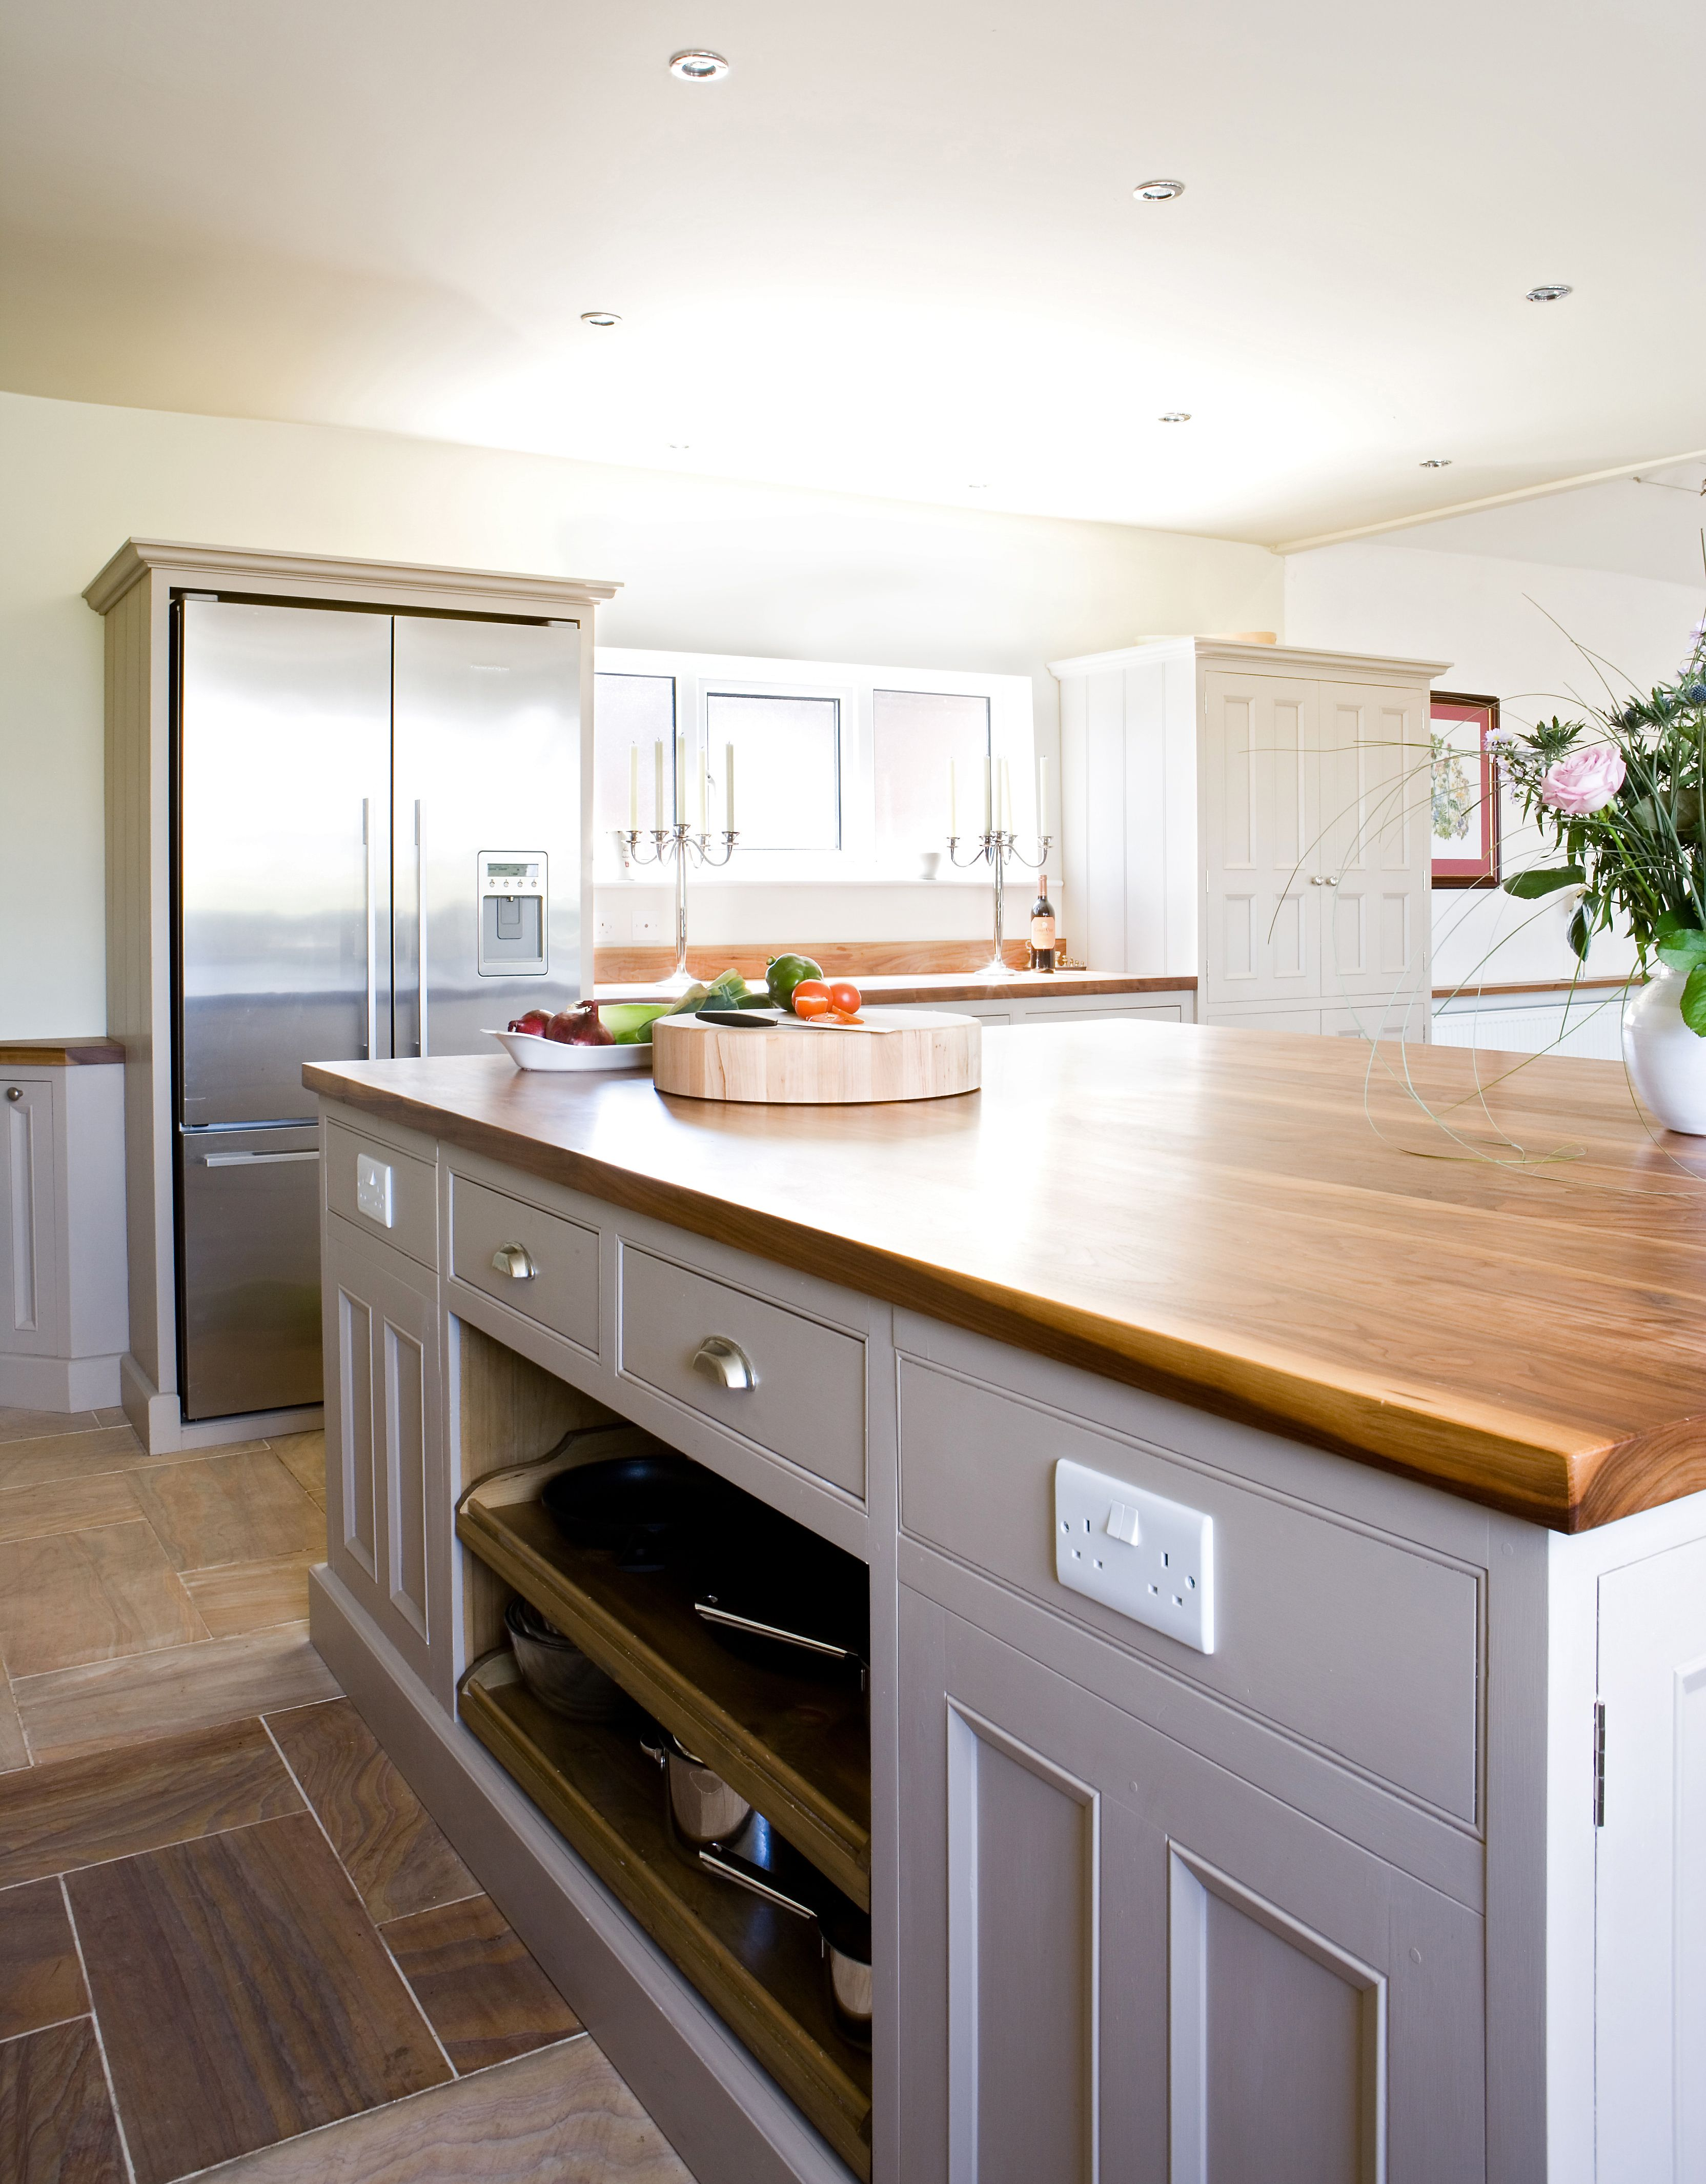 Sleek And Sophisticated This Artisan Built Kitchen Creates An Instant Impression